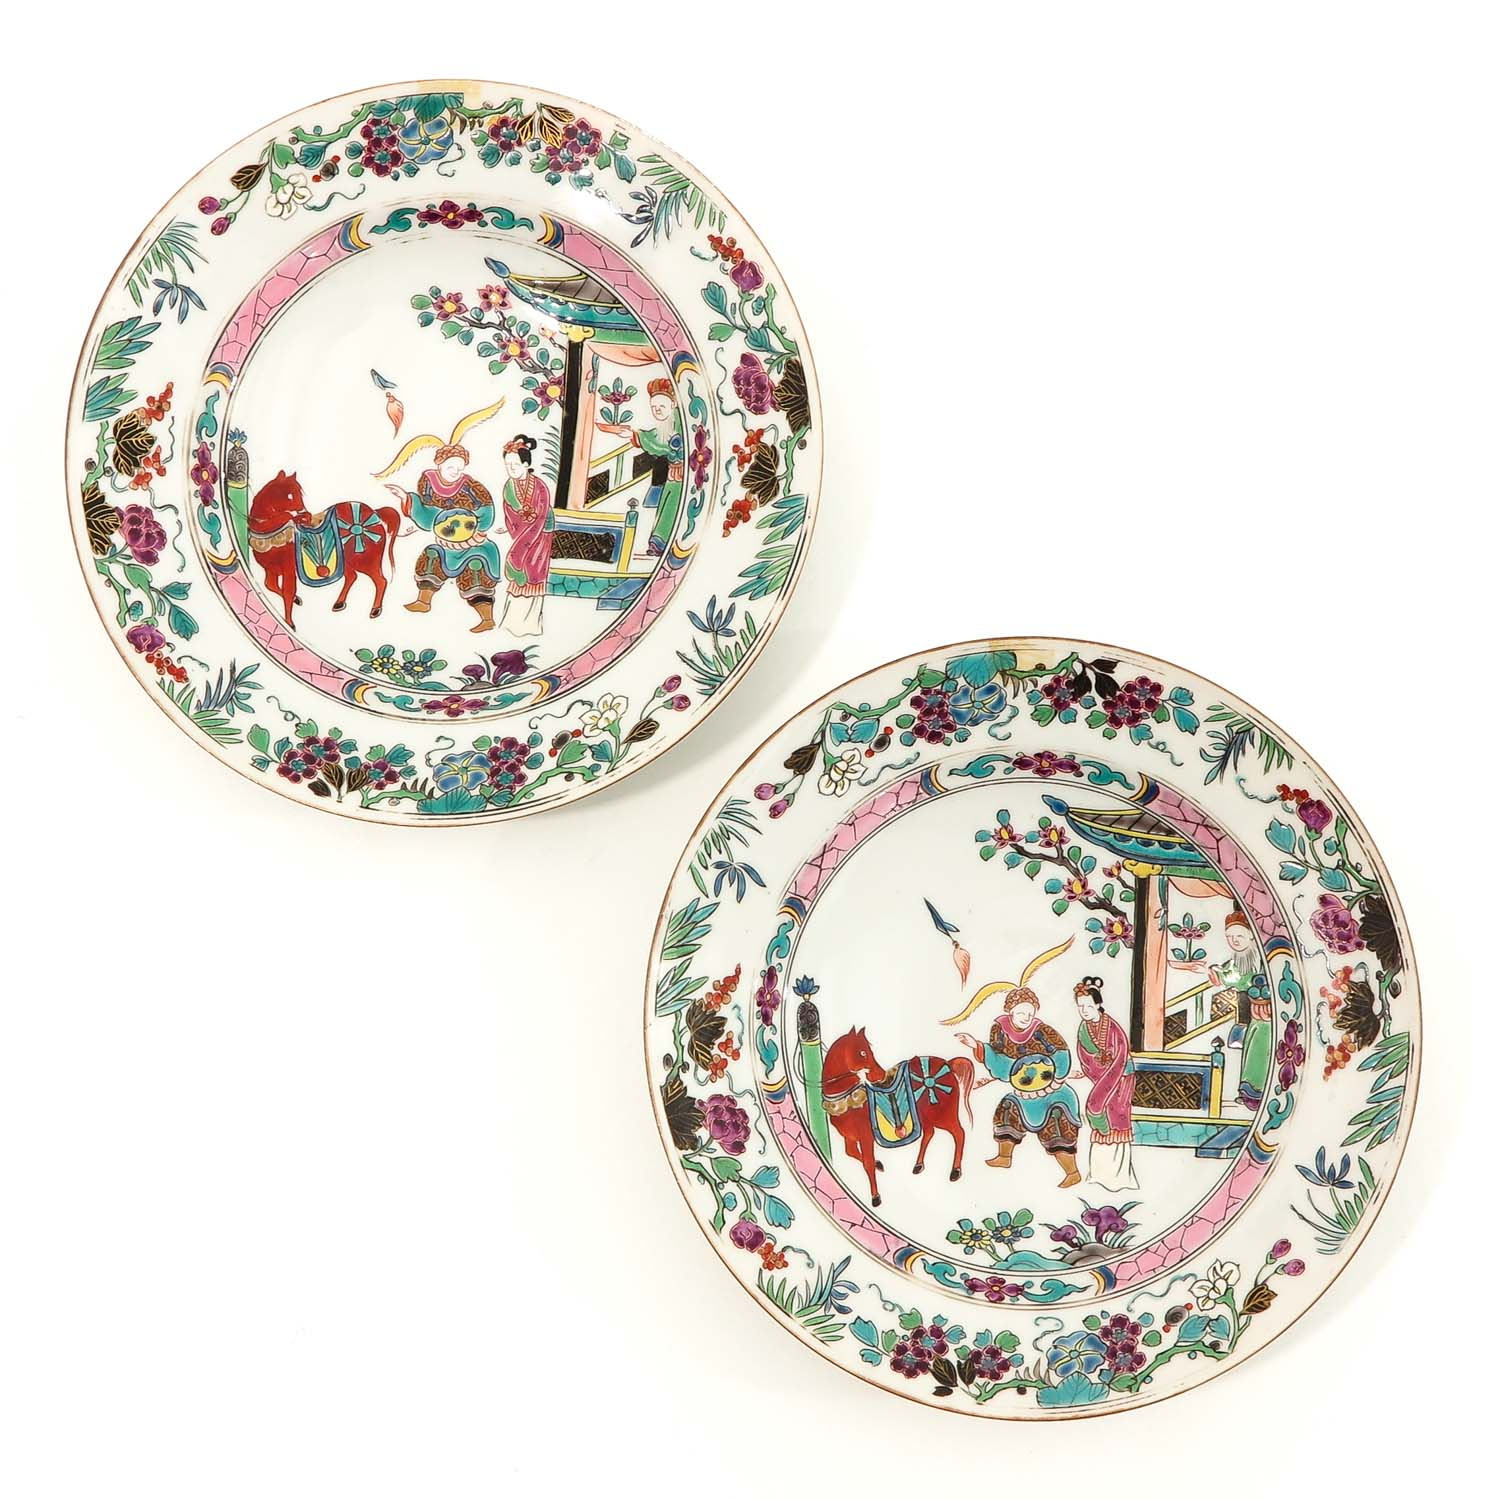 A Series of 4 Famille Rose Plates - Image 3 of 10